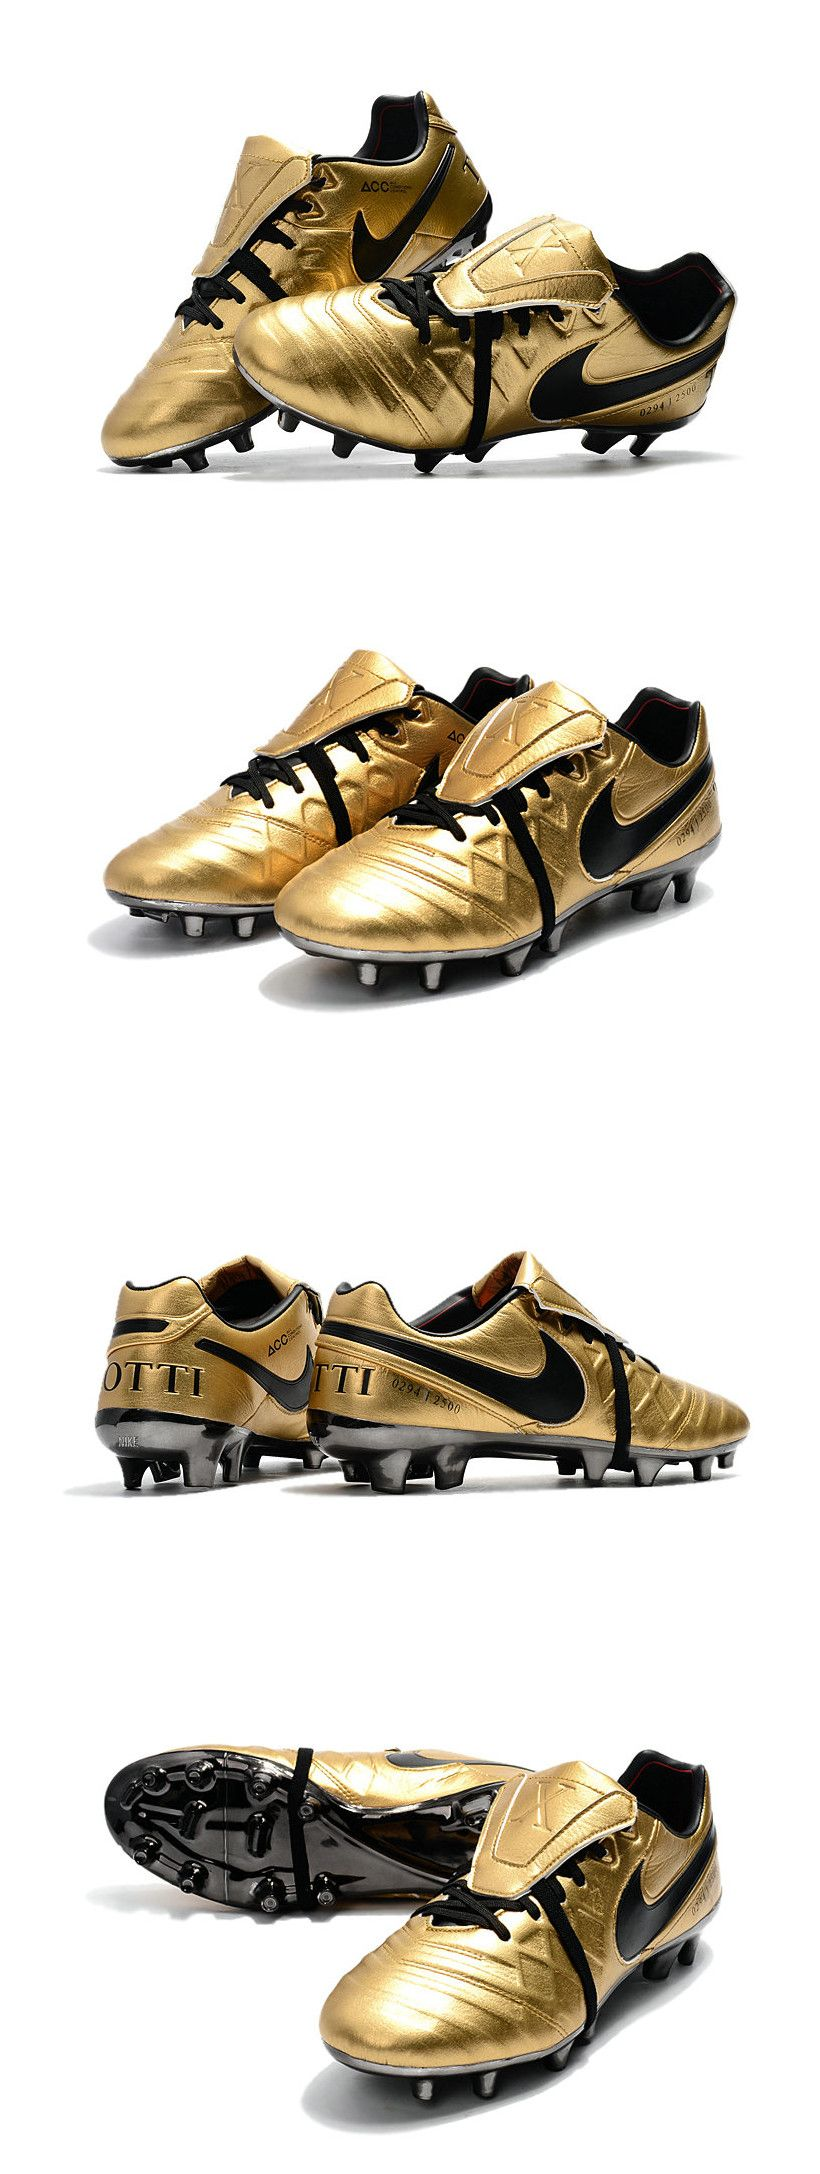 new style c689a 41155 Nike Tiempo Totti X Roma Limited Edition Gold Soccer Cleats ...